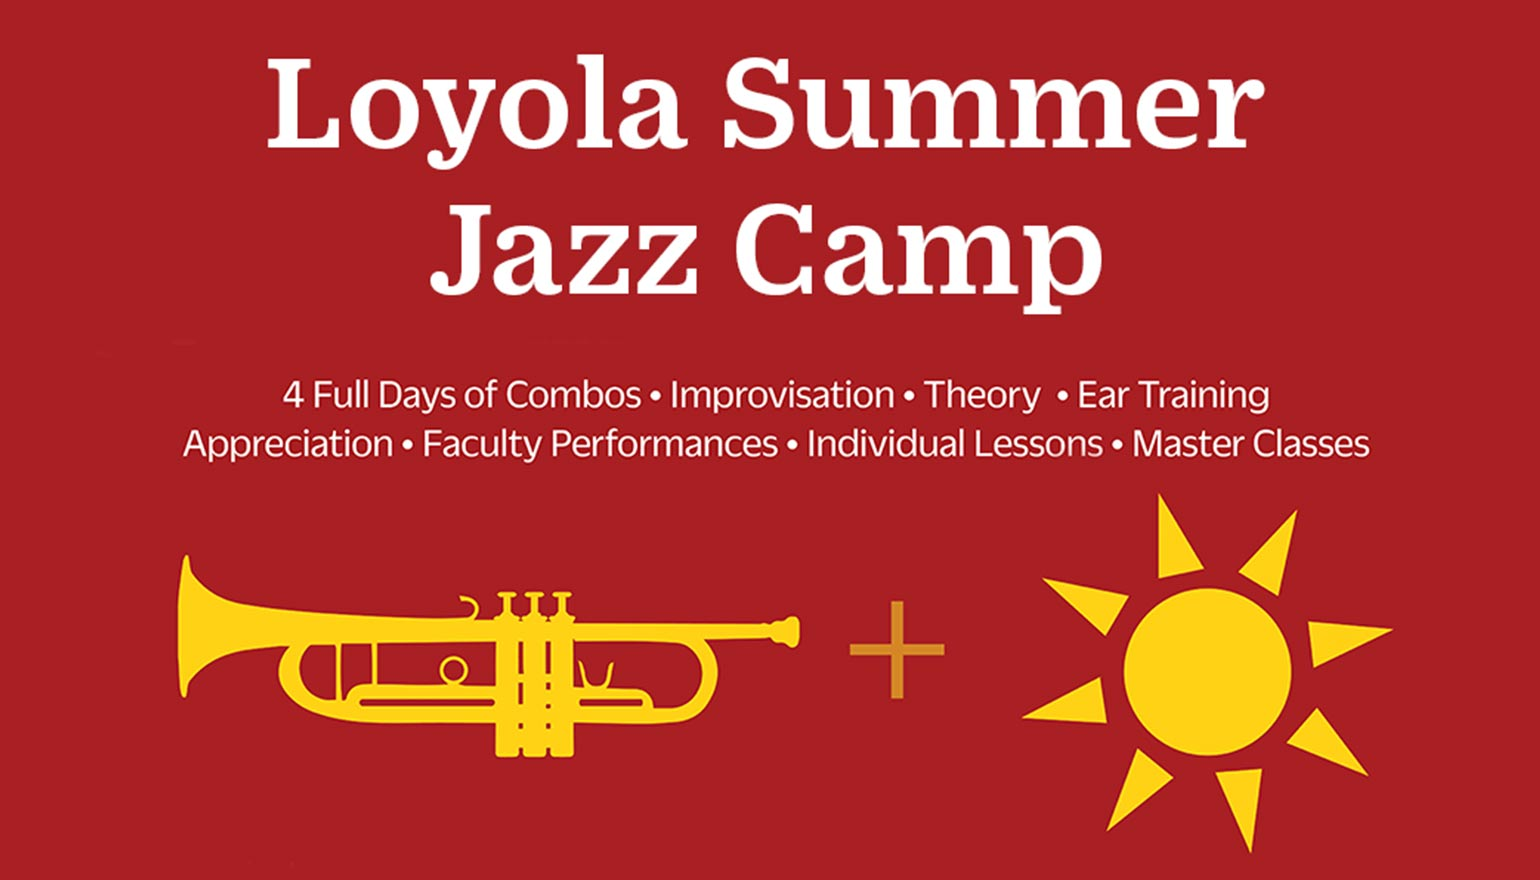 Jazz Camp Graphic